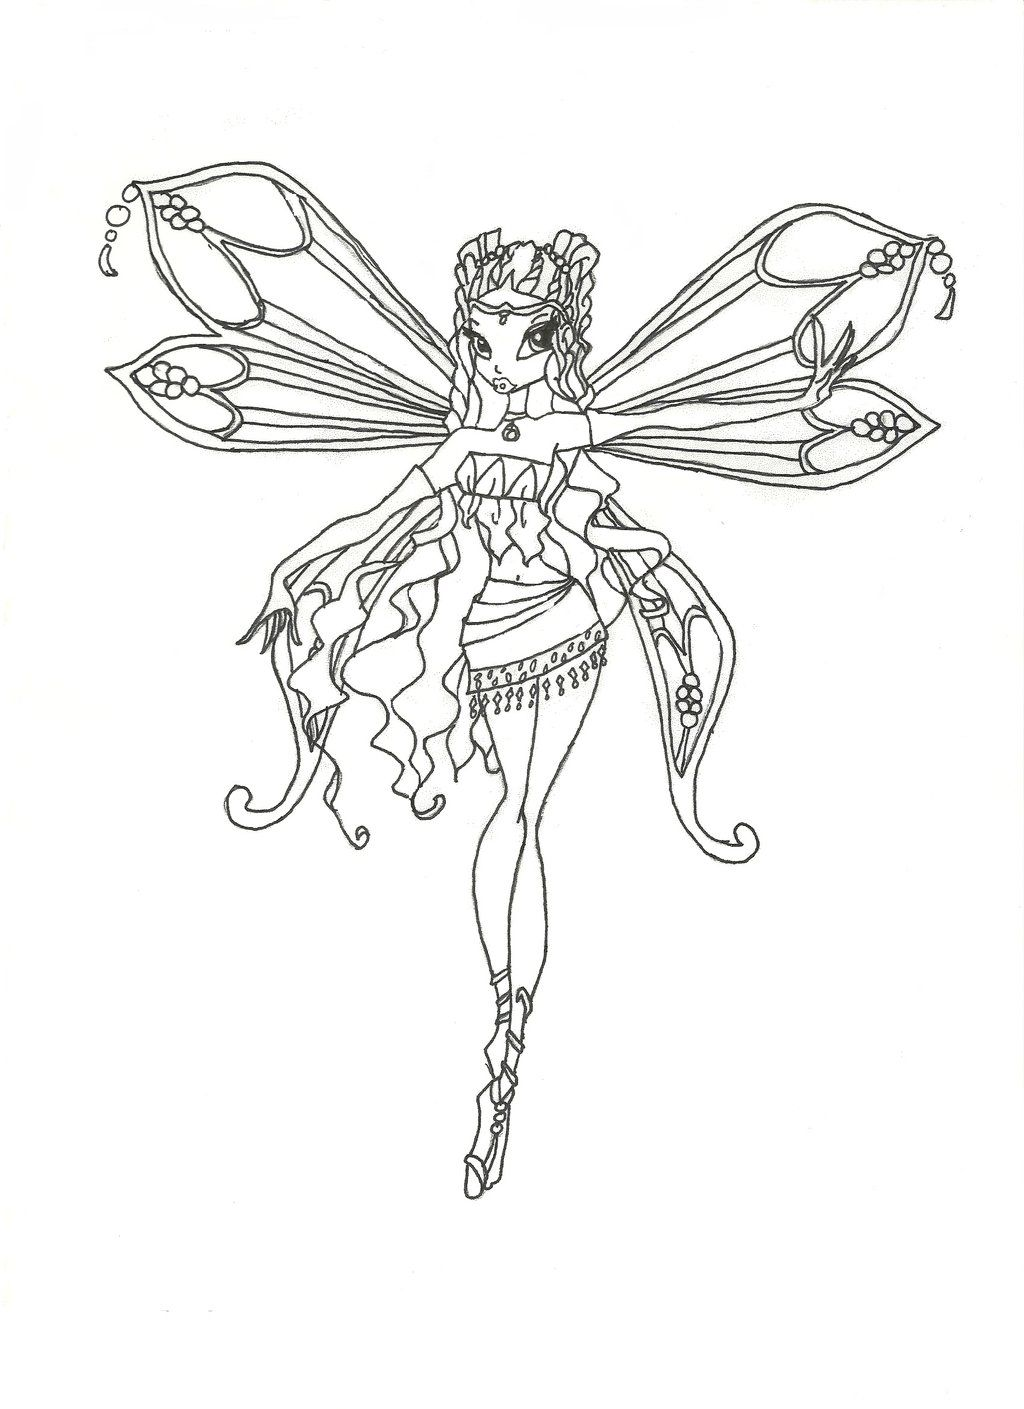 Kleurplaten Winx Enchantix.Winx Club Enchantix Layla Coloring Page By Winxmagic237 Deviantart